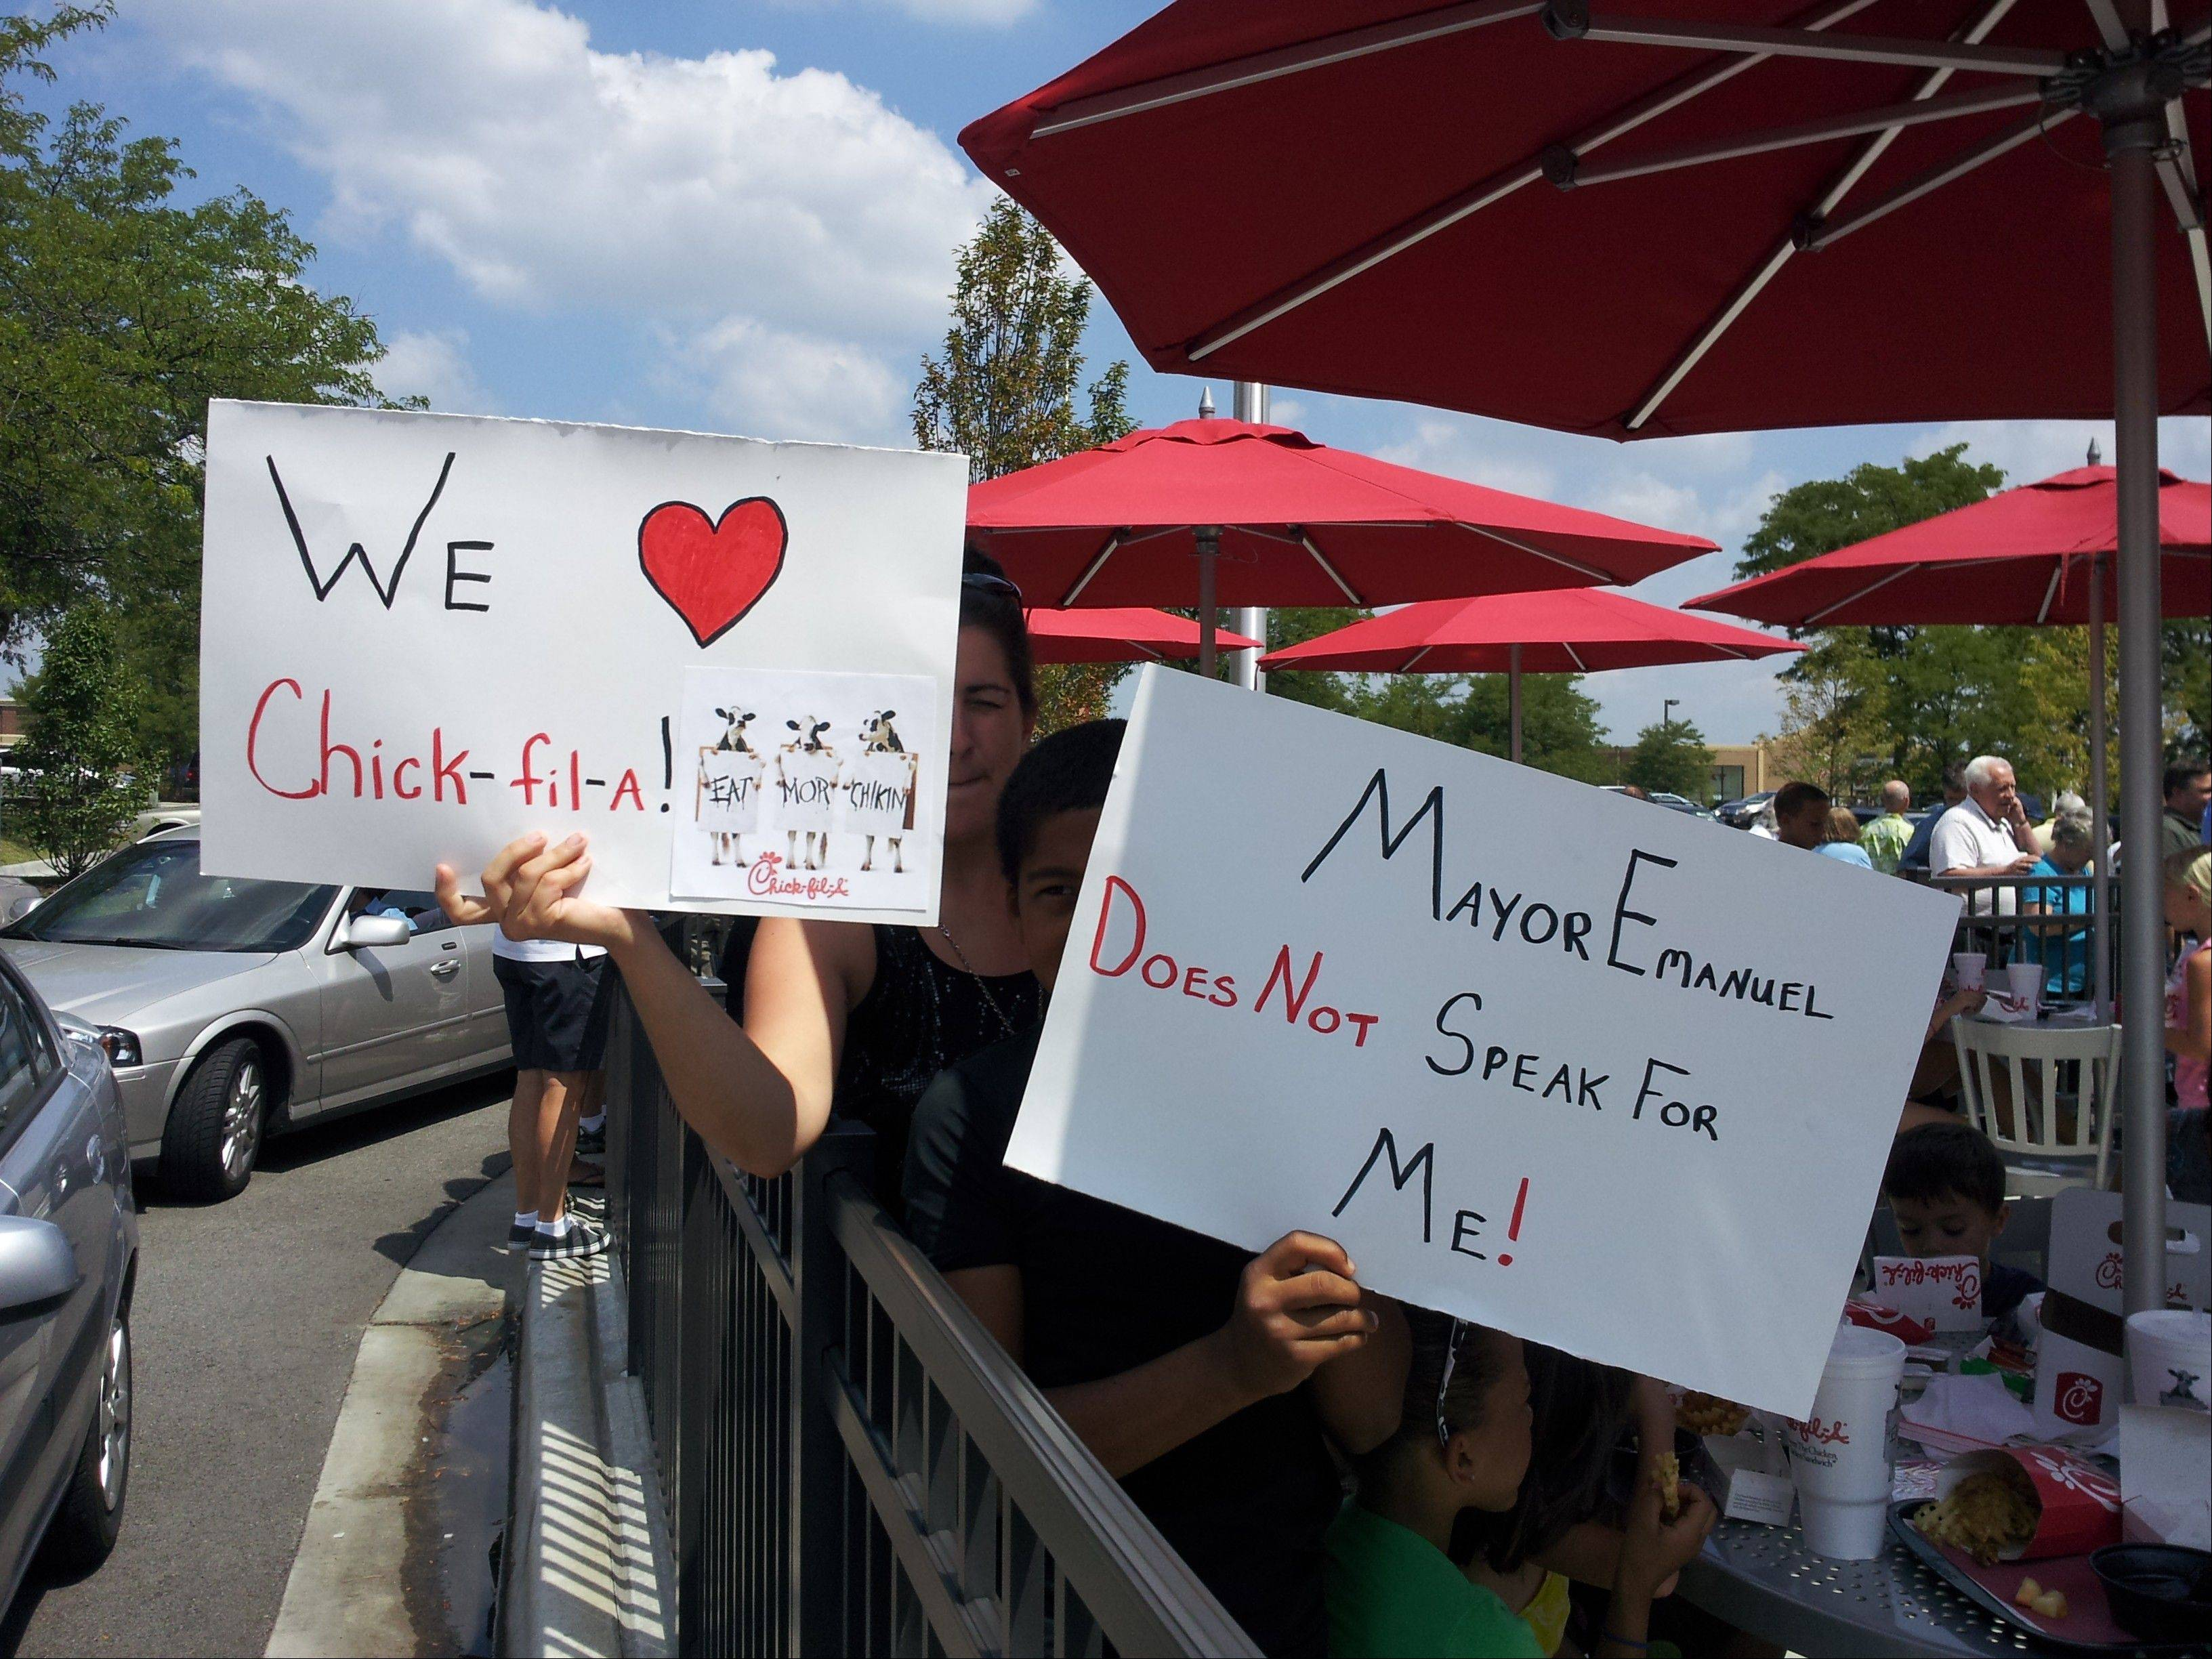 People wave signs Wednesday at the Schaumburg Chick-fil-A to show their support of the restaurant chain president's opposition to same-sex marriage.